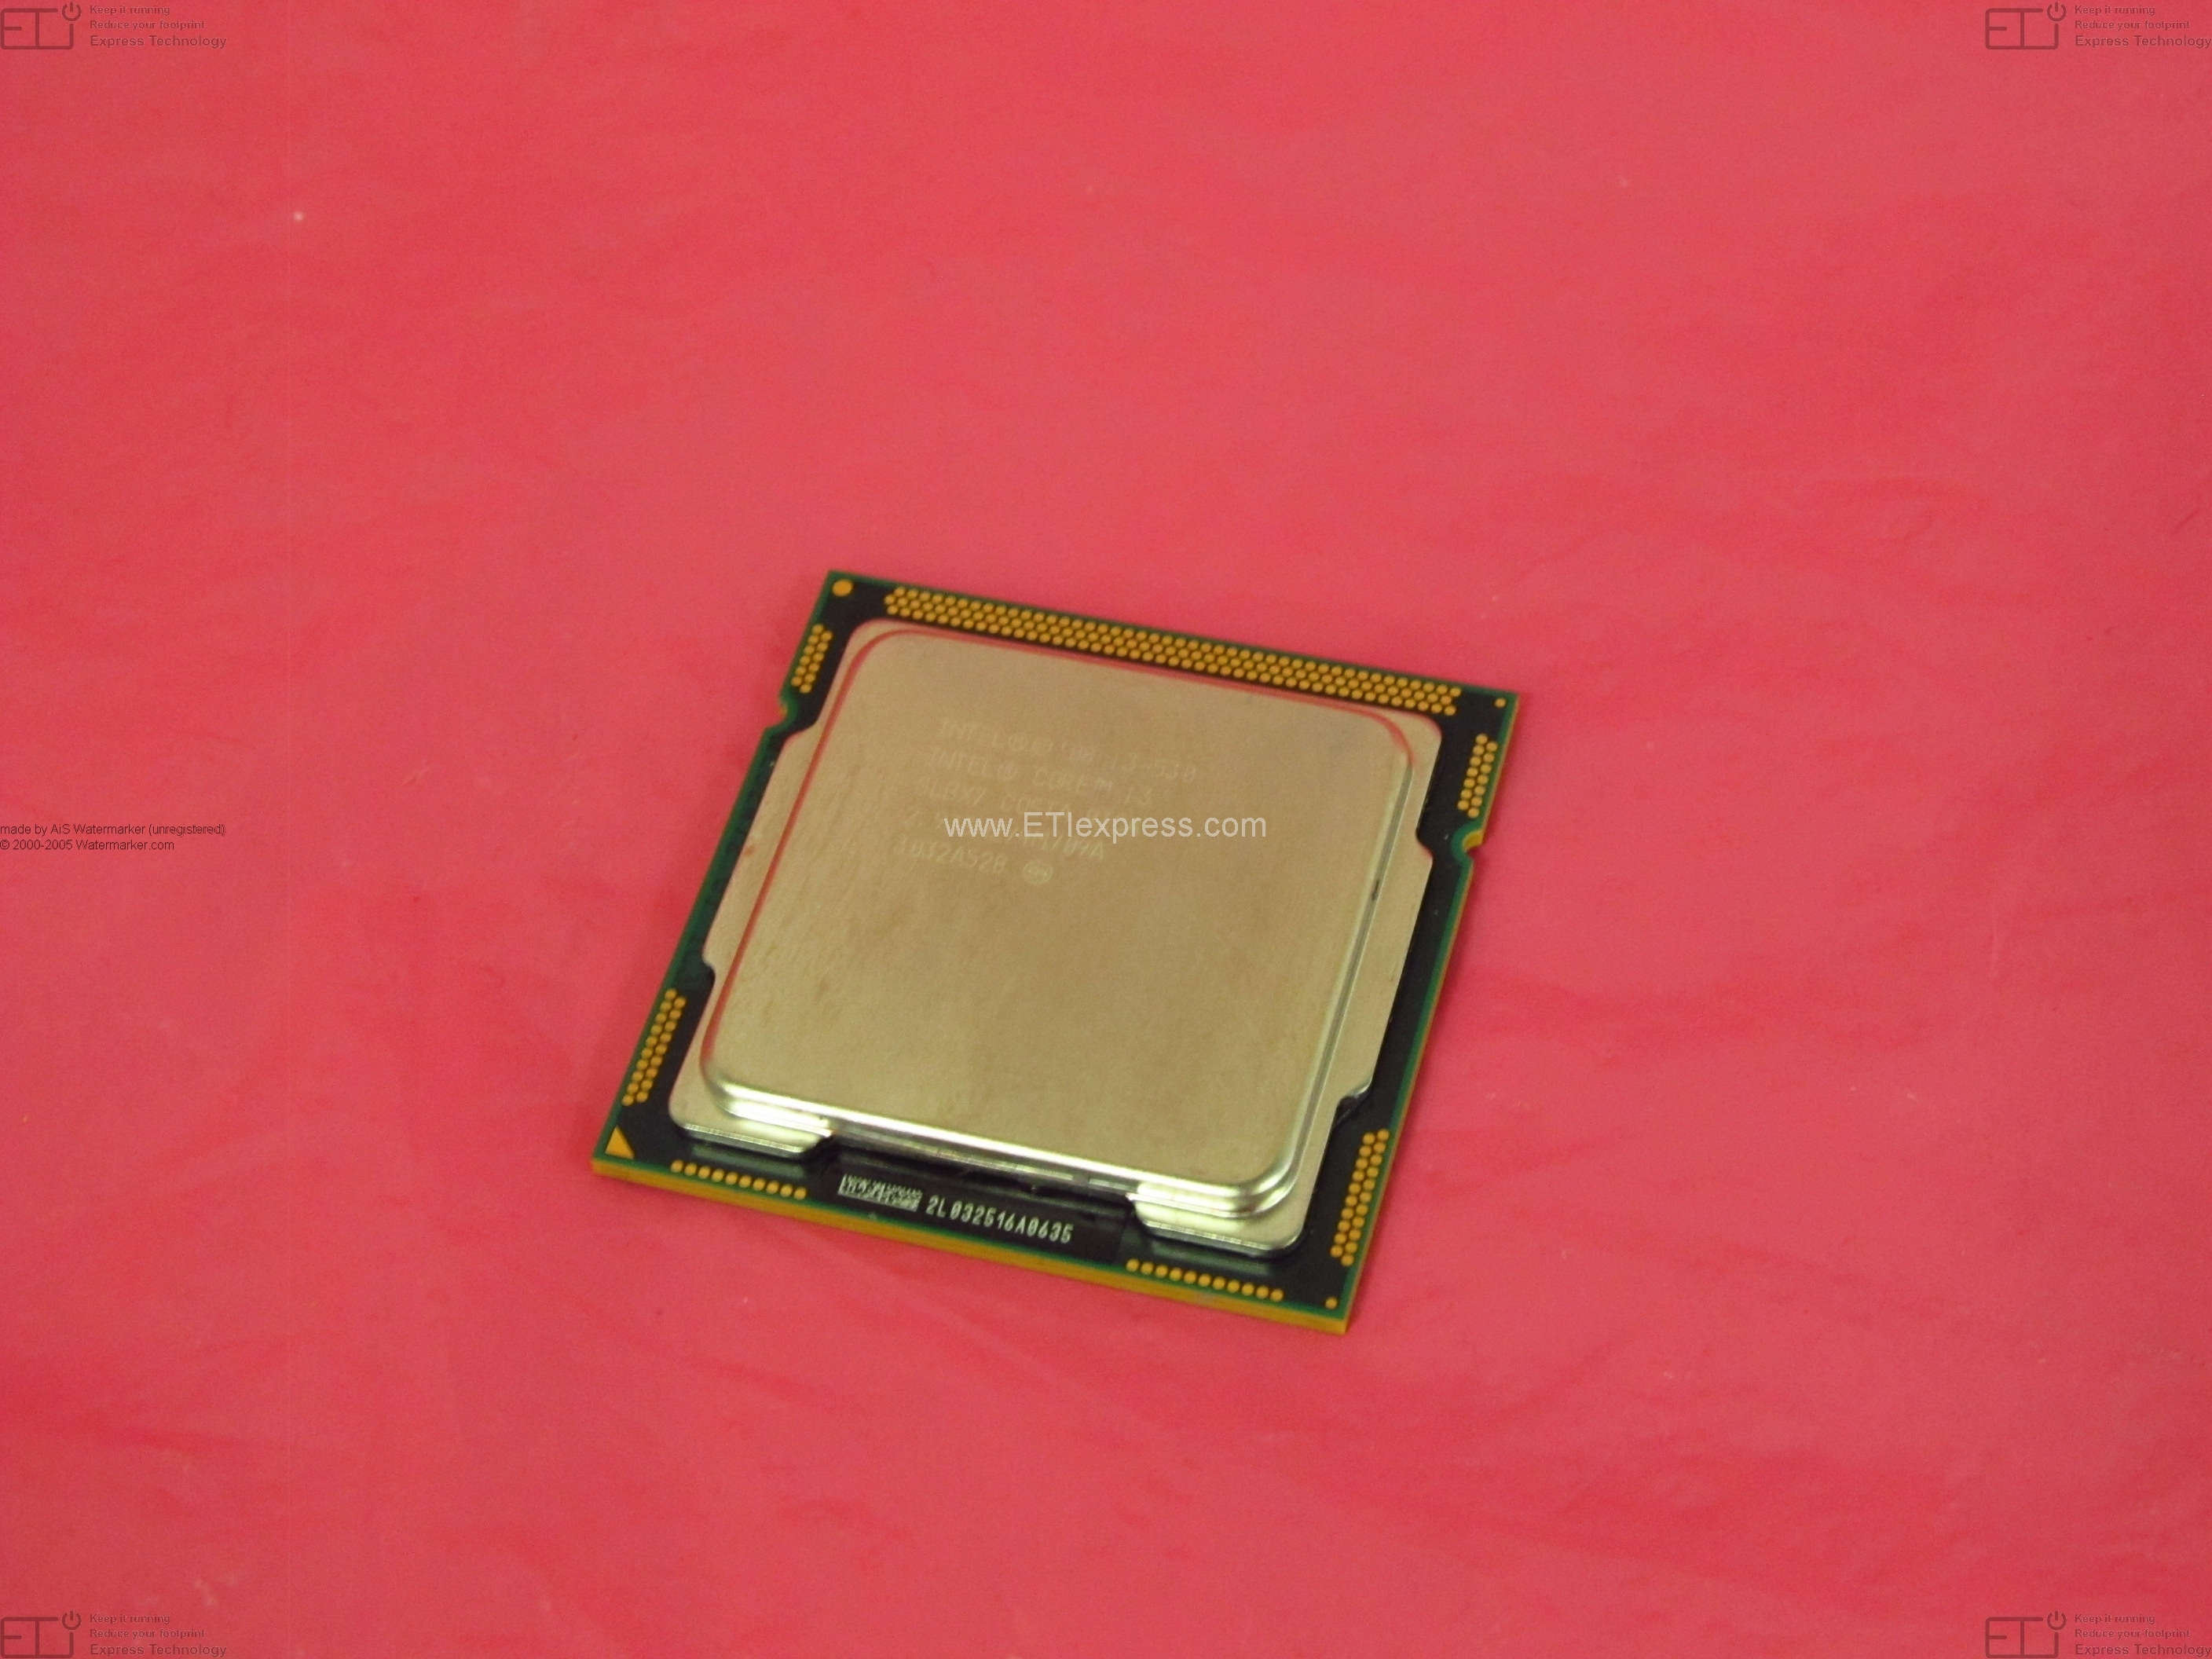 95 Watts 667 FSB BL20Pg4 HP 405040-B21 Dual-Core Intel Xeon 5050 3.0 GHz